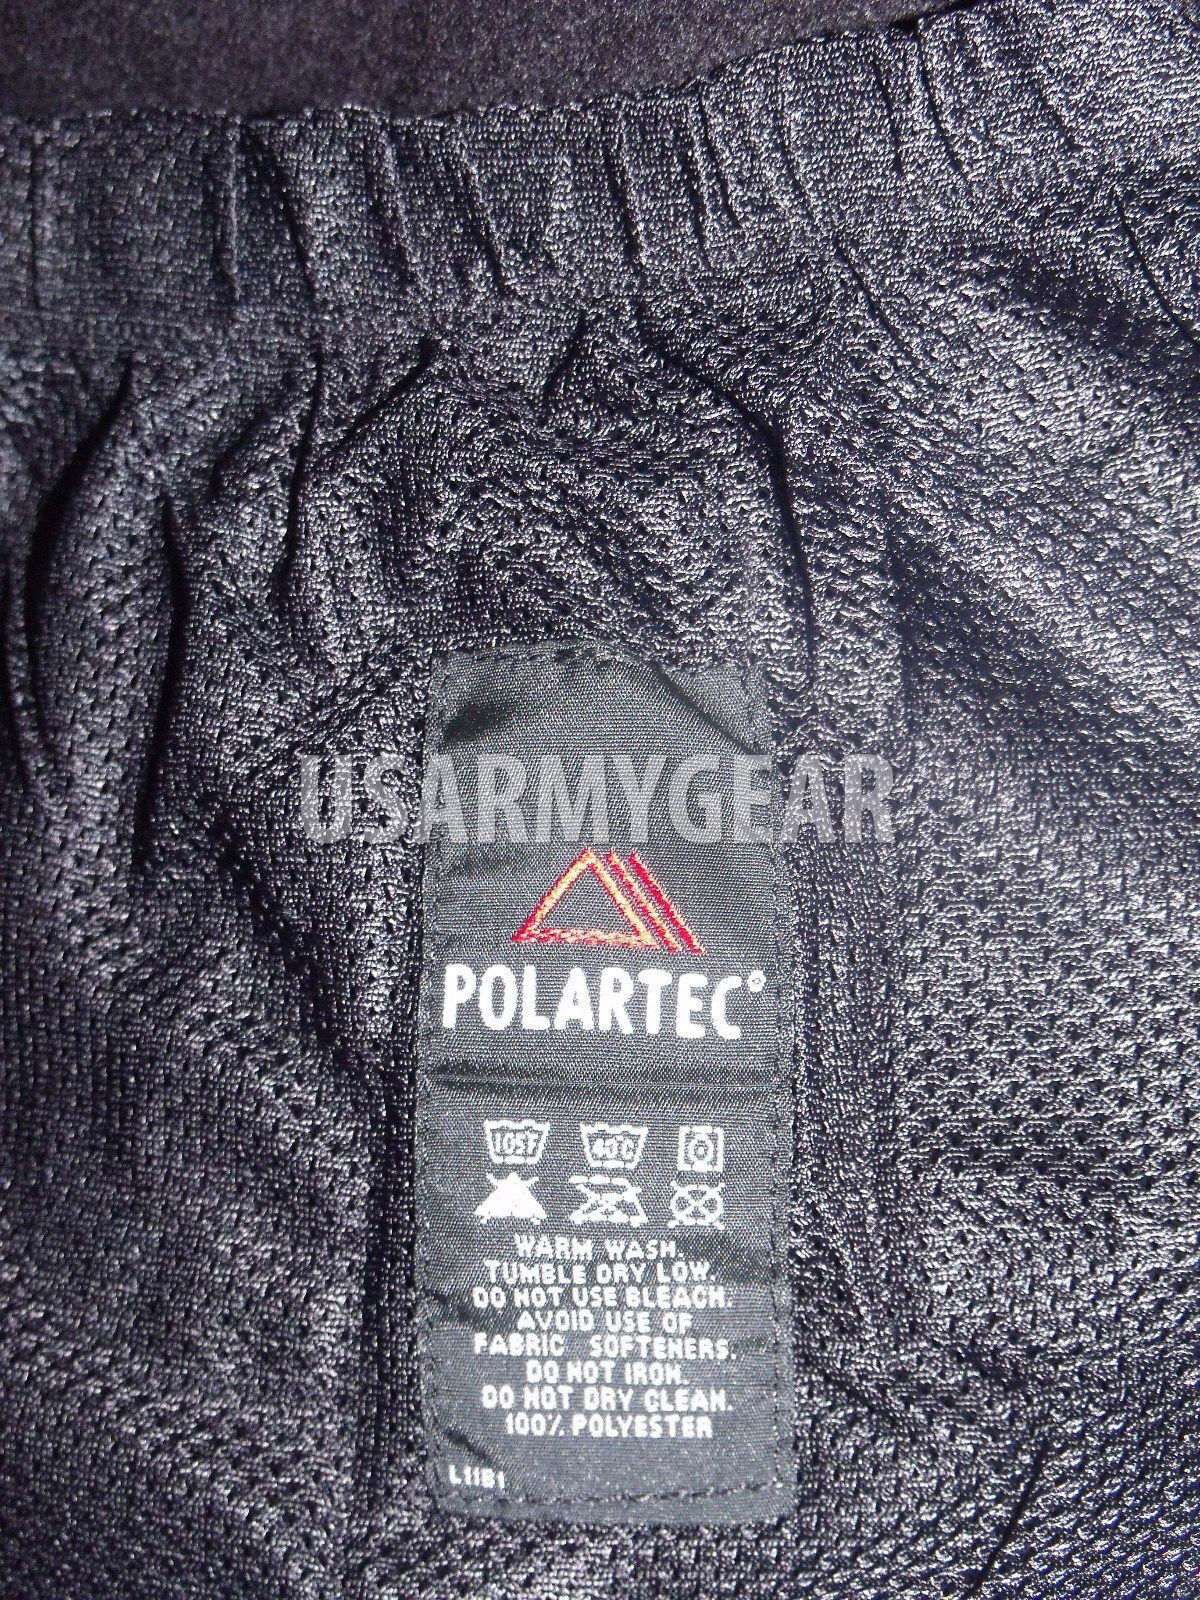 Made in USA PolarTec 300 Cold Weather Military Fleece Jacket Army Black Shirt L